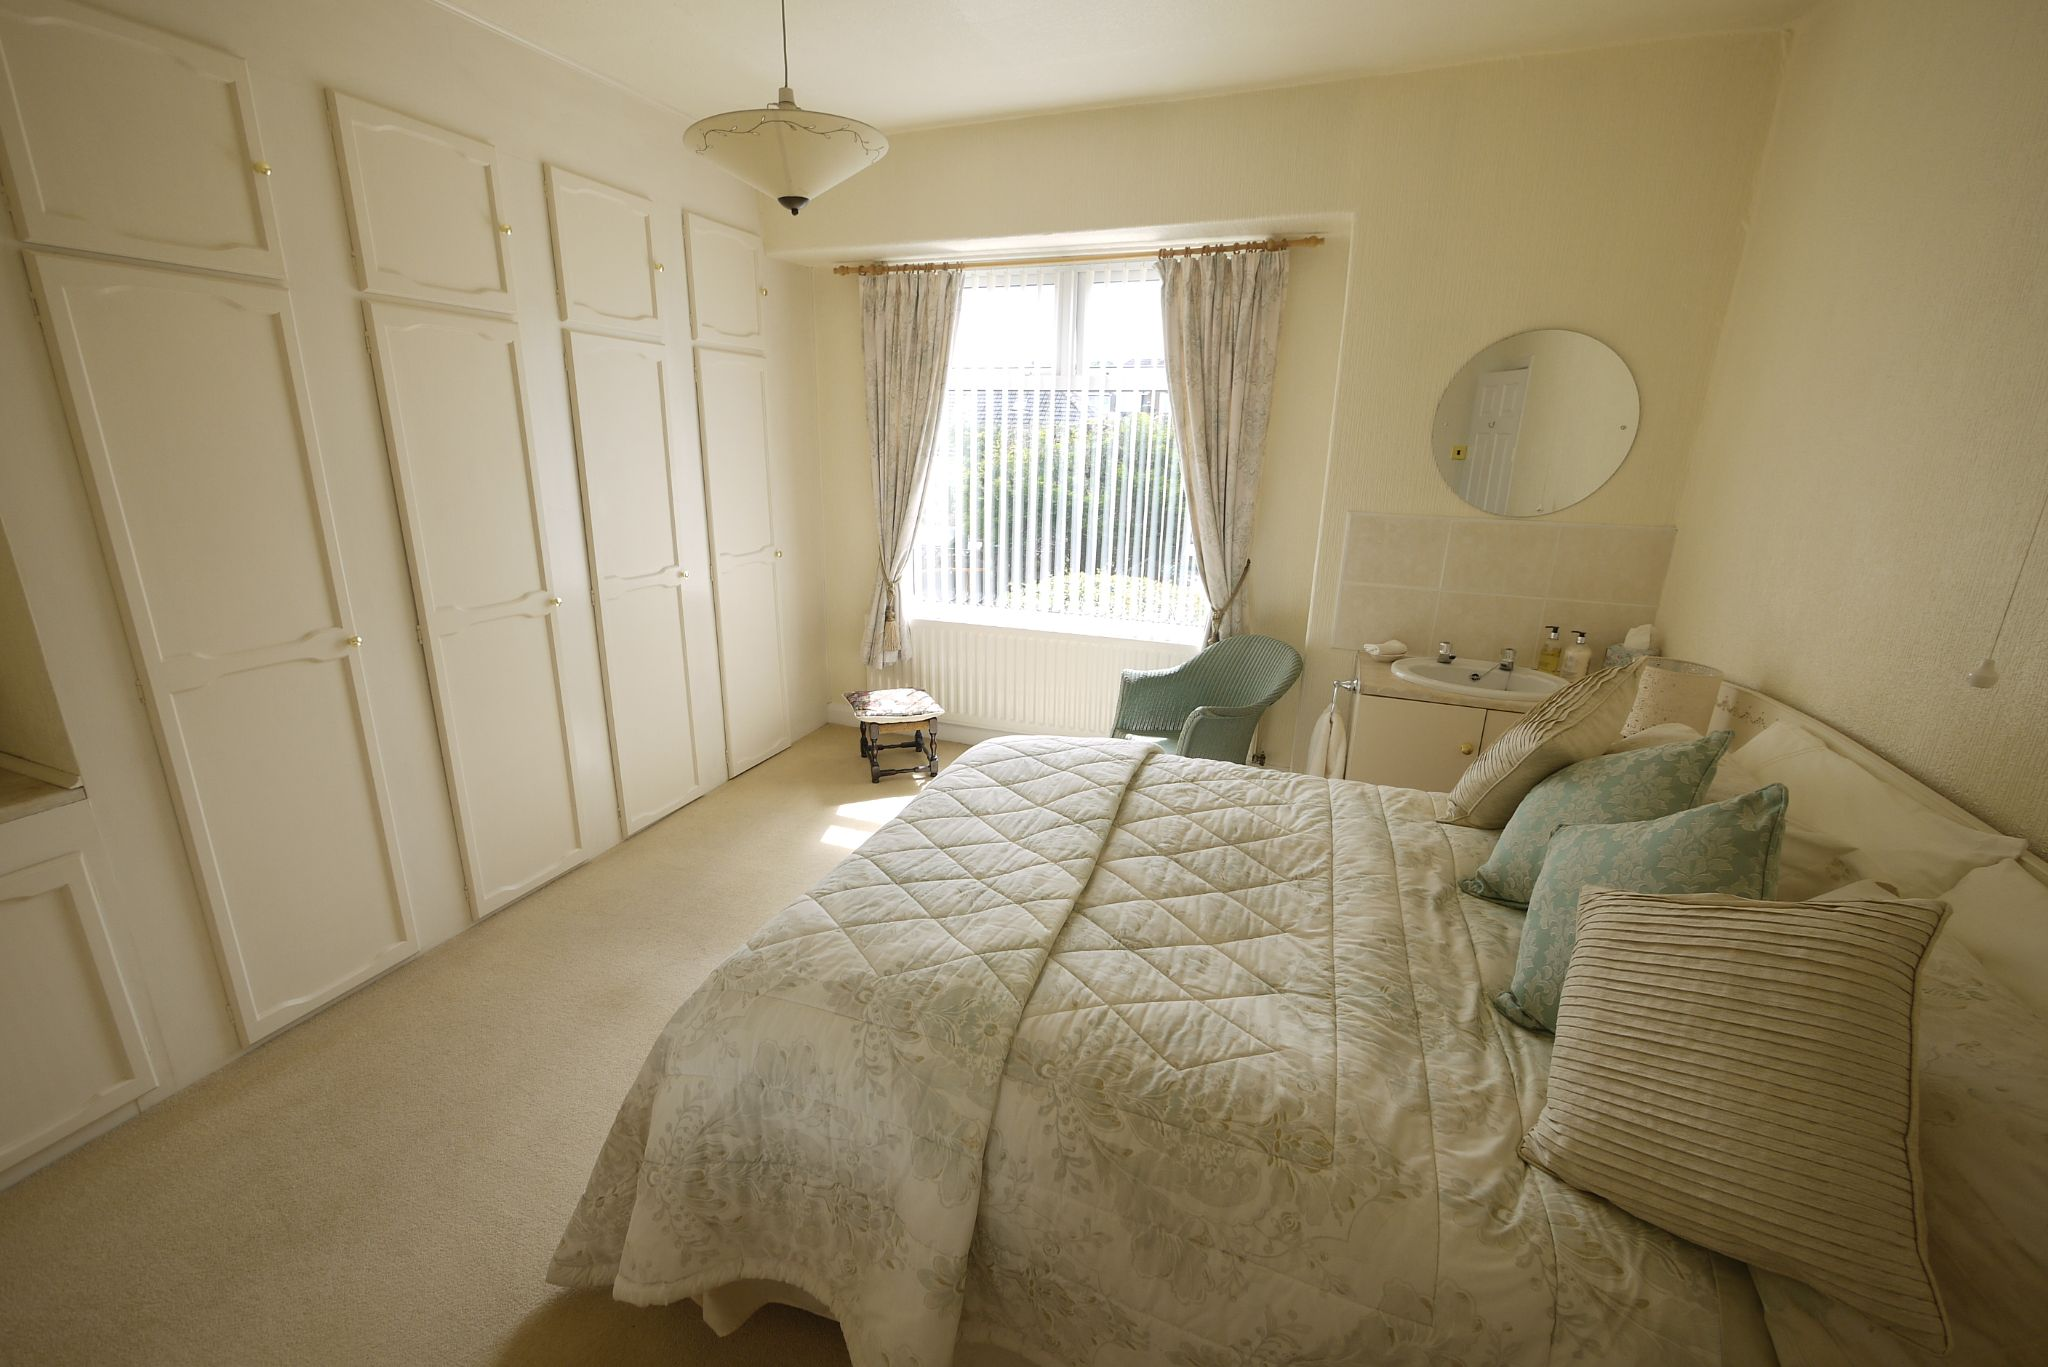 4 bedroom semi-detached house SSTC in Brighouse - Photograph 9.